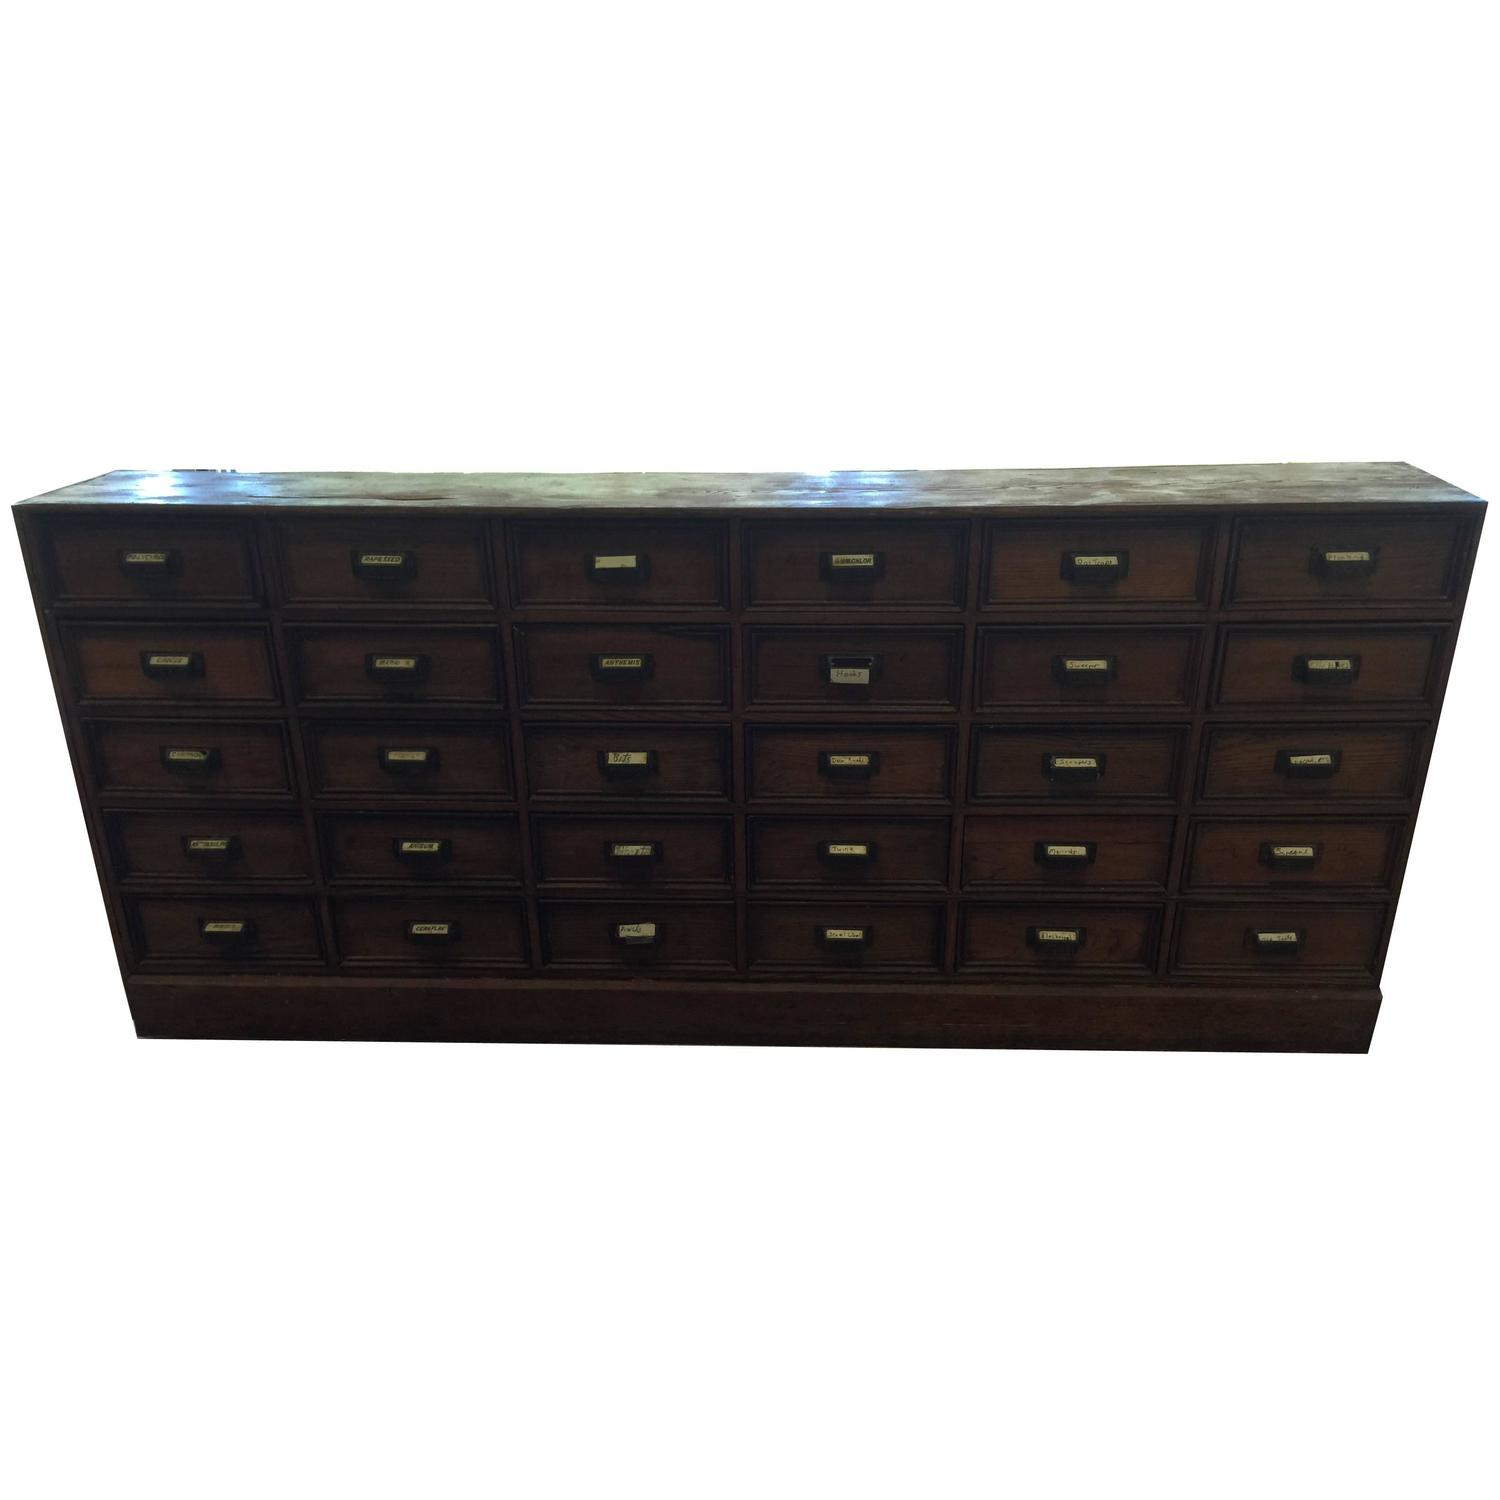 Antique 1900s Apothecary Chest 30 Bank of Drawer Cabinet Herb Wood at  1stdibs - Antique 1900s Apothecary Chest 30 Bank Of Drawer Cabinet Herb Wood